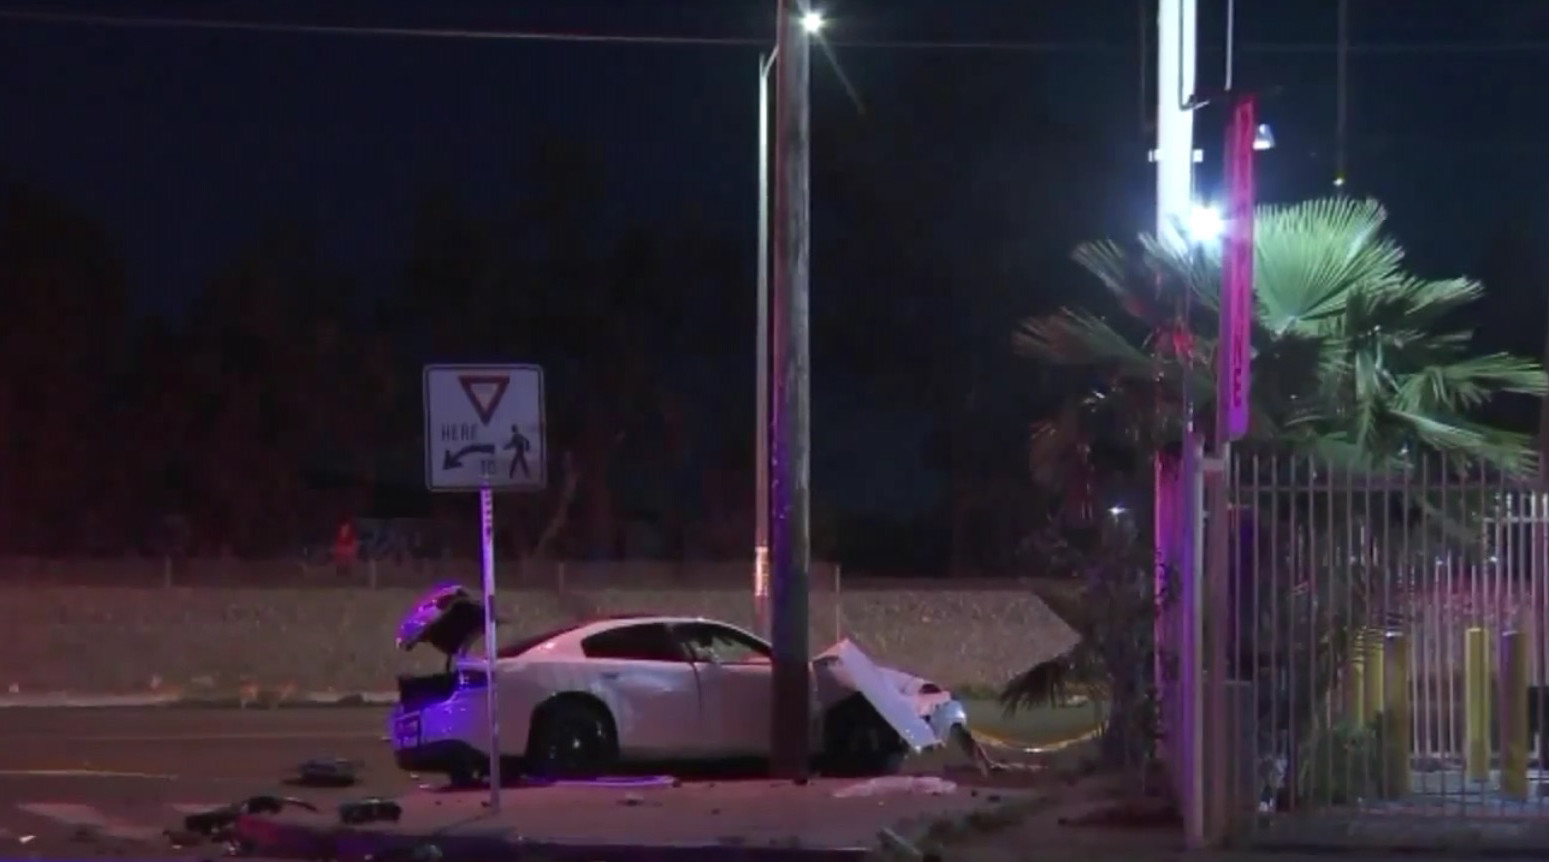 Suspect sought in hit-and-run crash that killed 2 people in Sun Valley